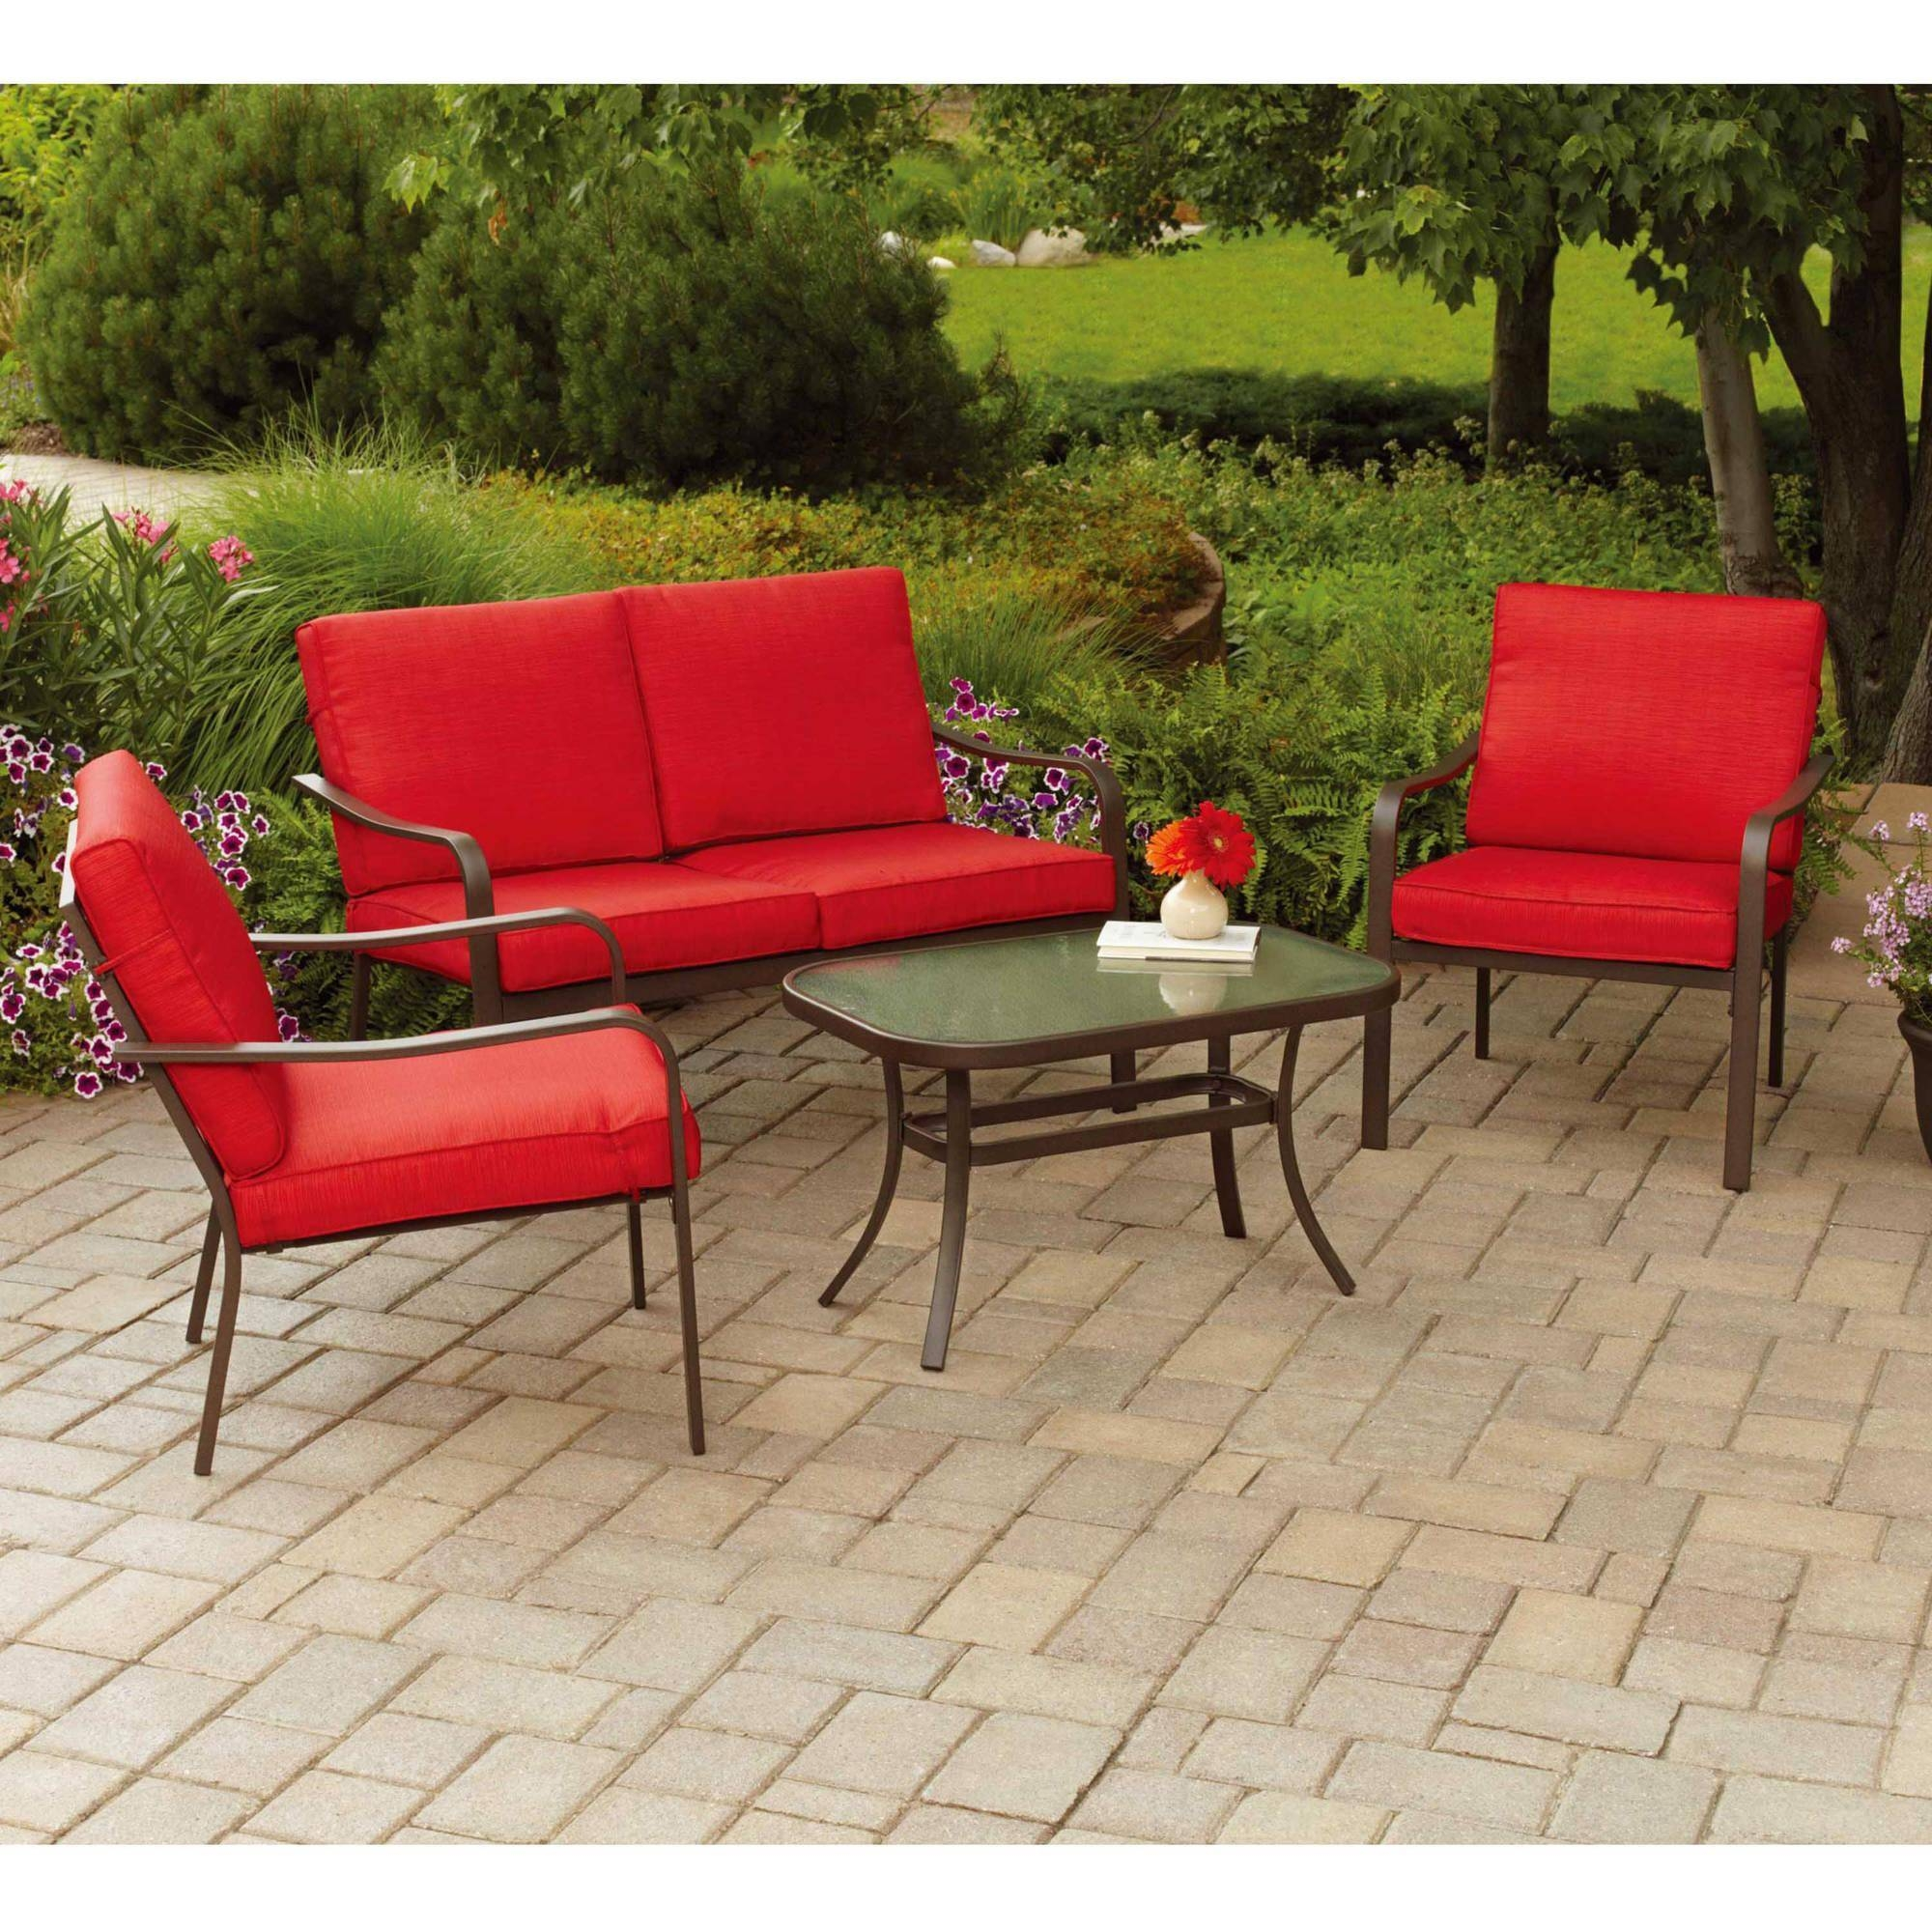 Patio: Cool Conversation Sets Patio Furniture Clearance With within Outdoor Sofa Chairs (Image 27 of 30)